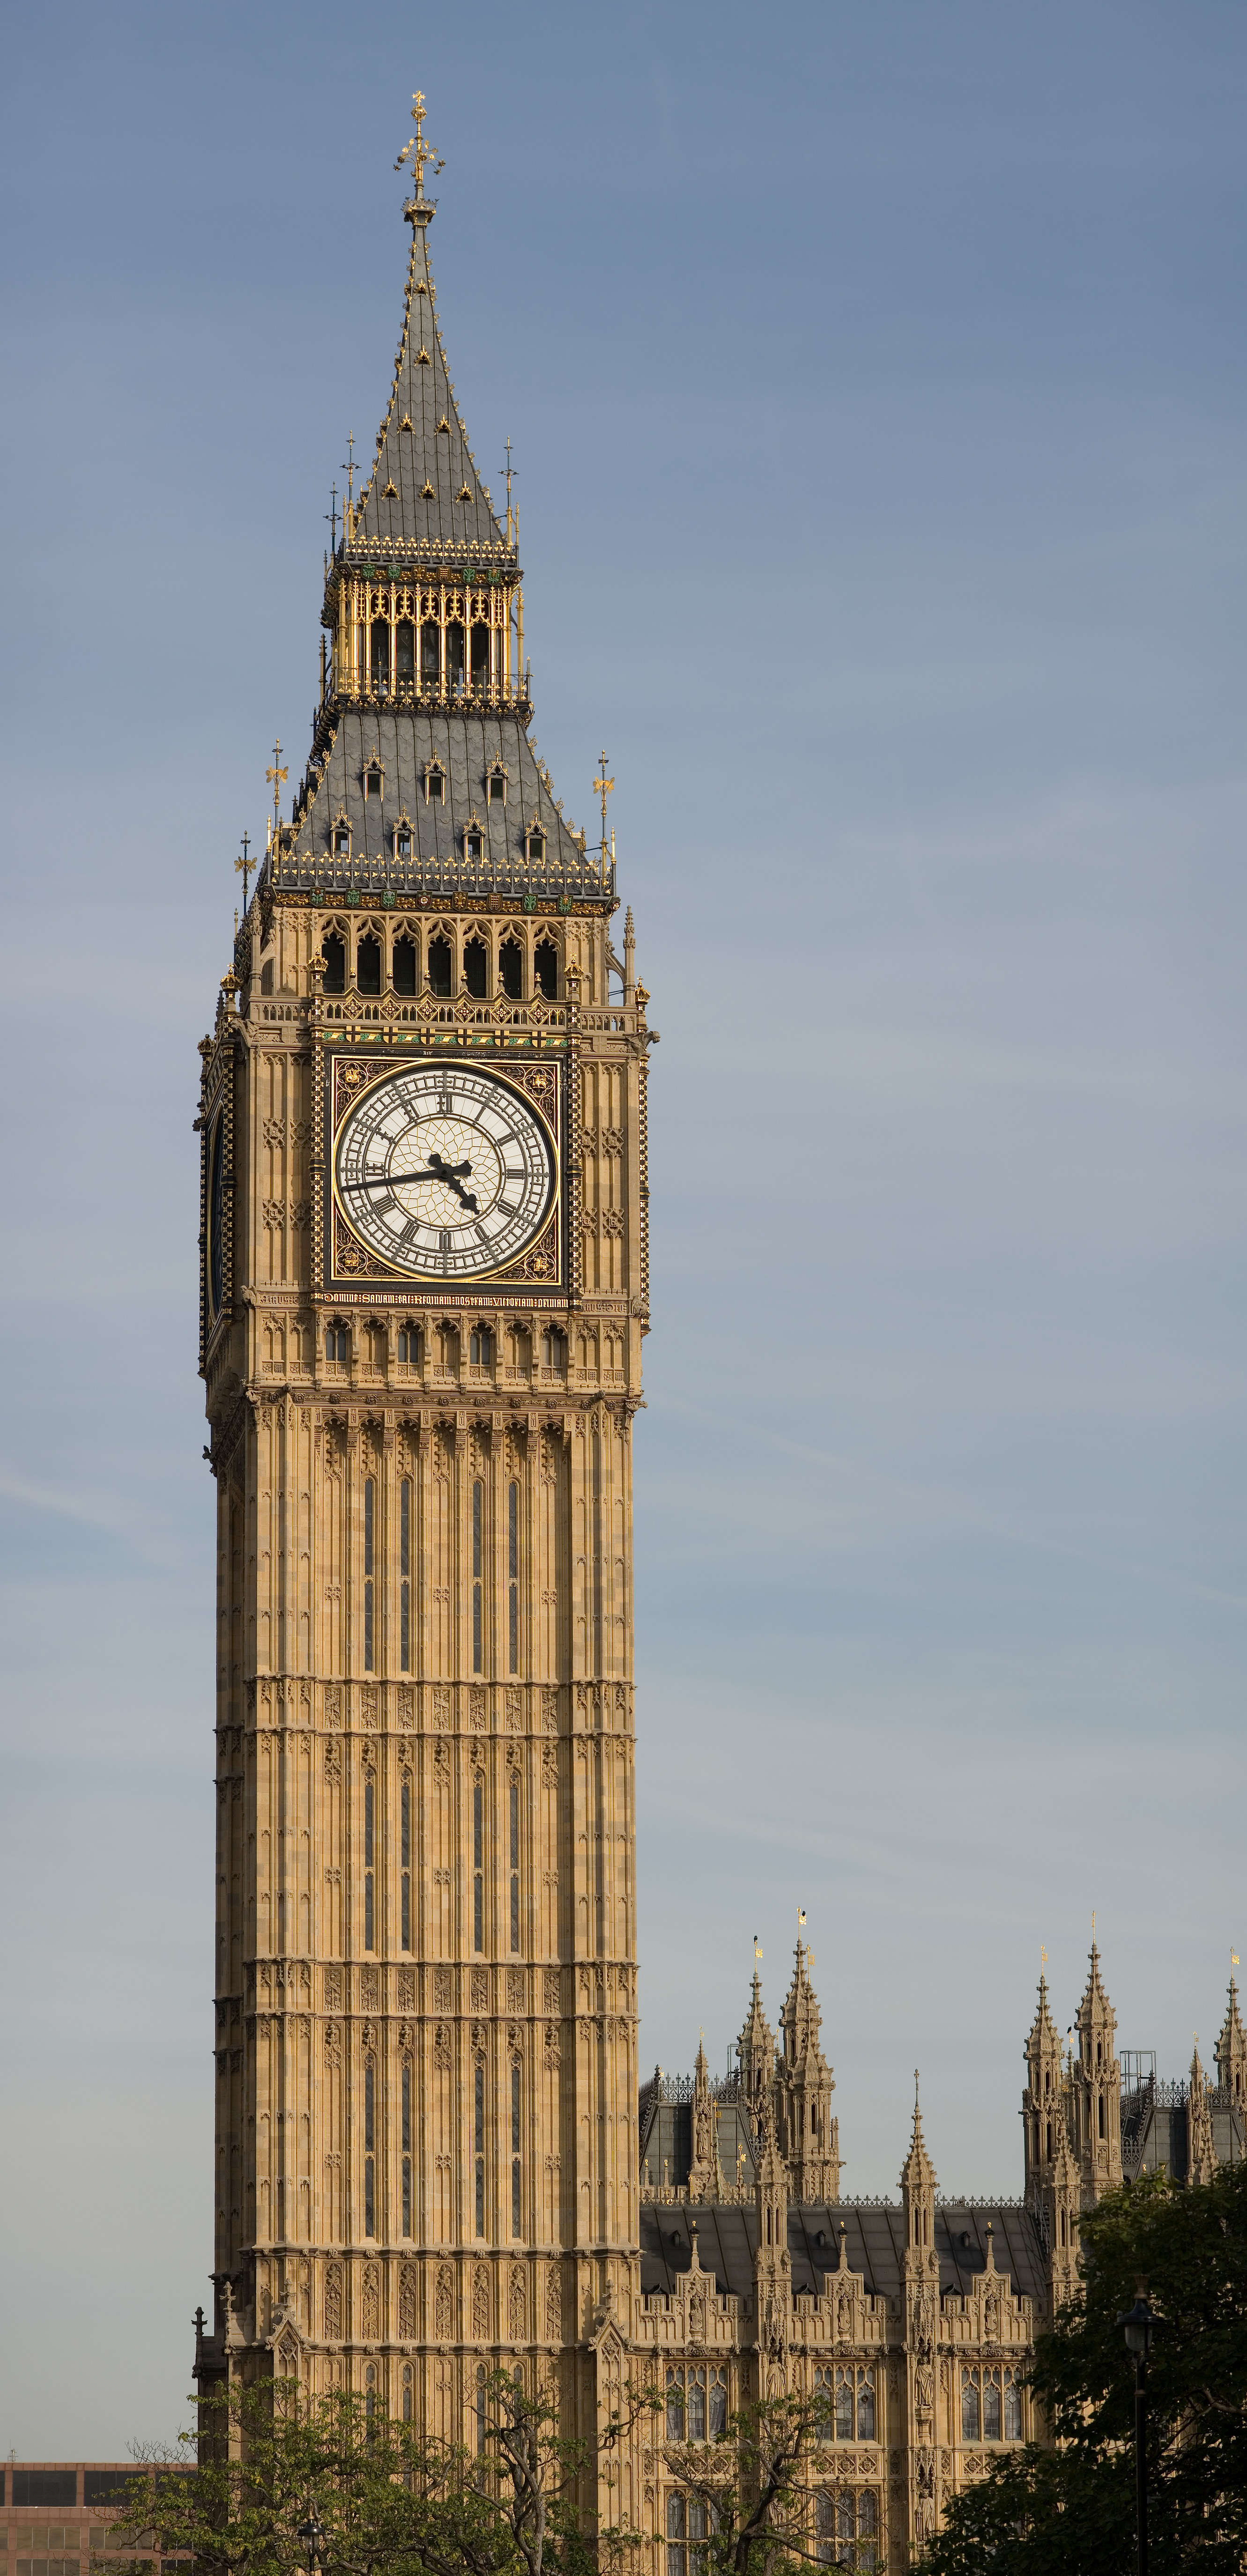 Clock_Tower_-_Palace_of_Westminster,_London_-_September_2006.jpg (2662×5500)